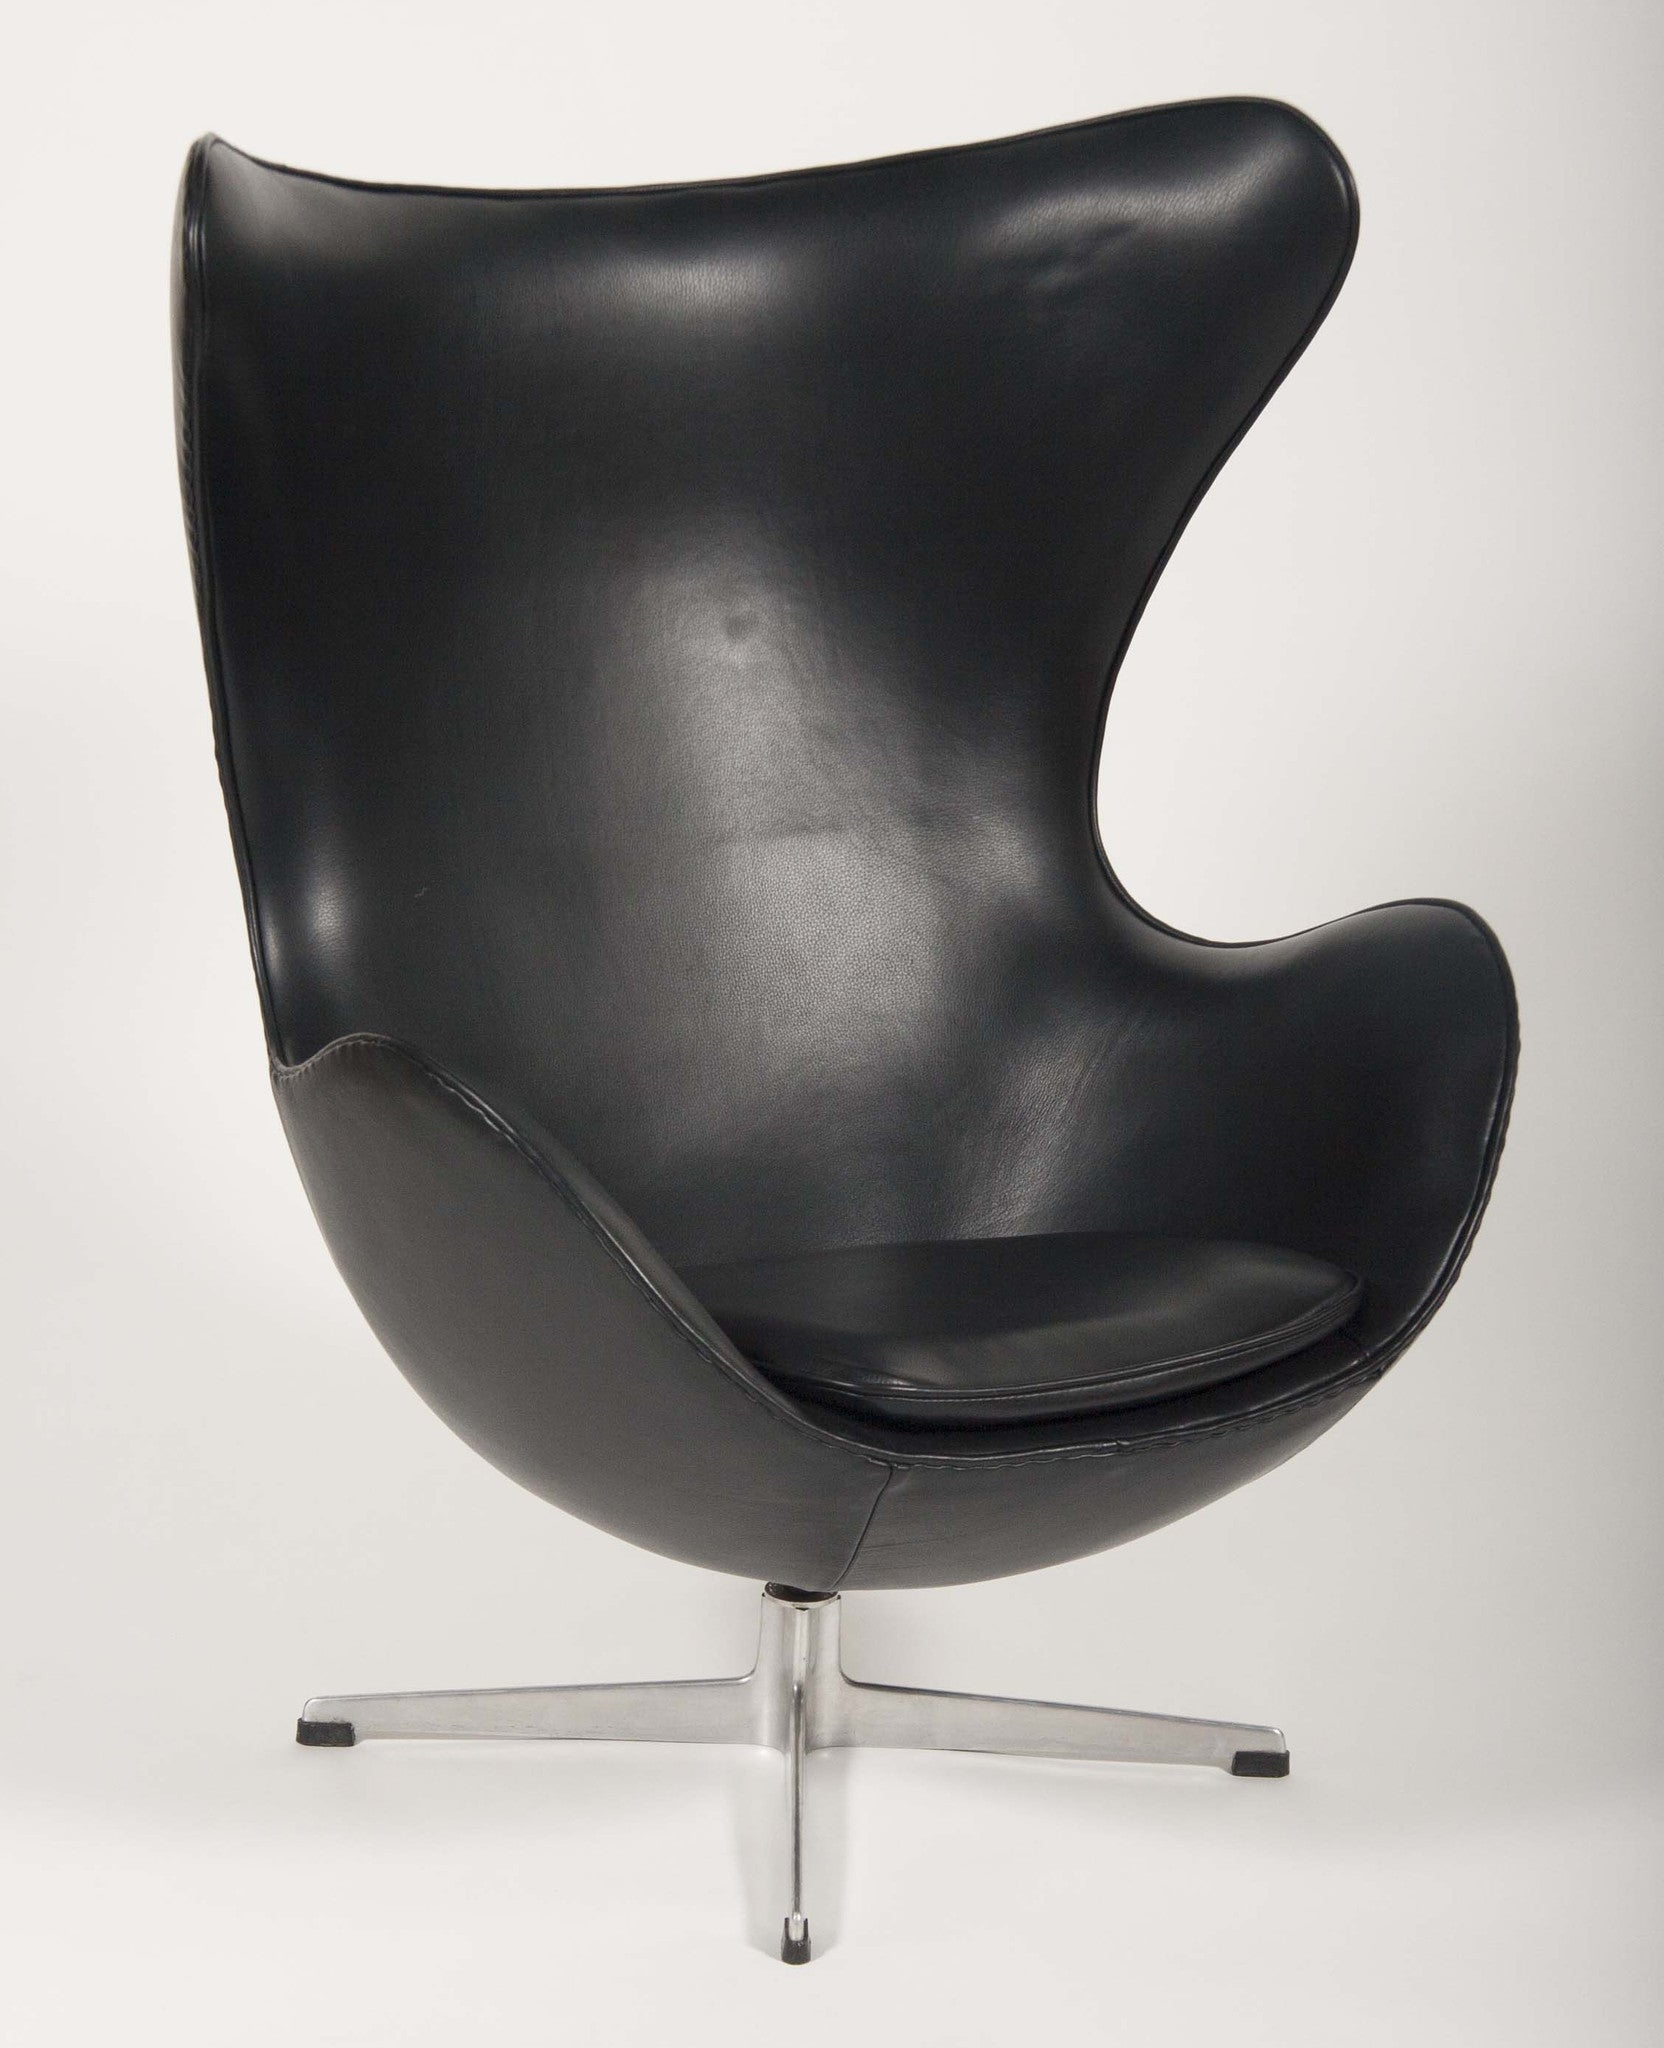 An Arne Jacobsen Egg Chair in Edelman Leather